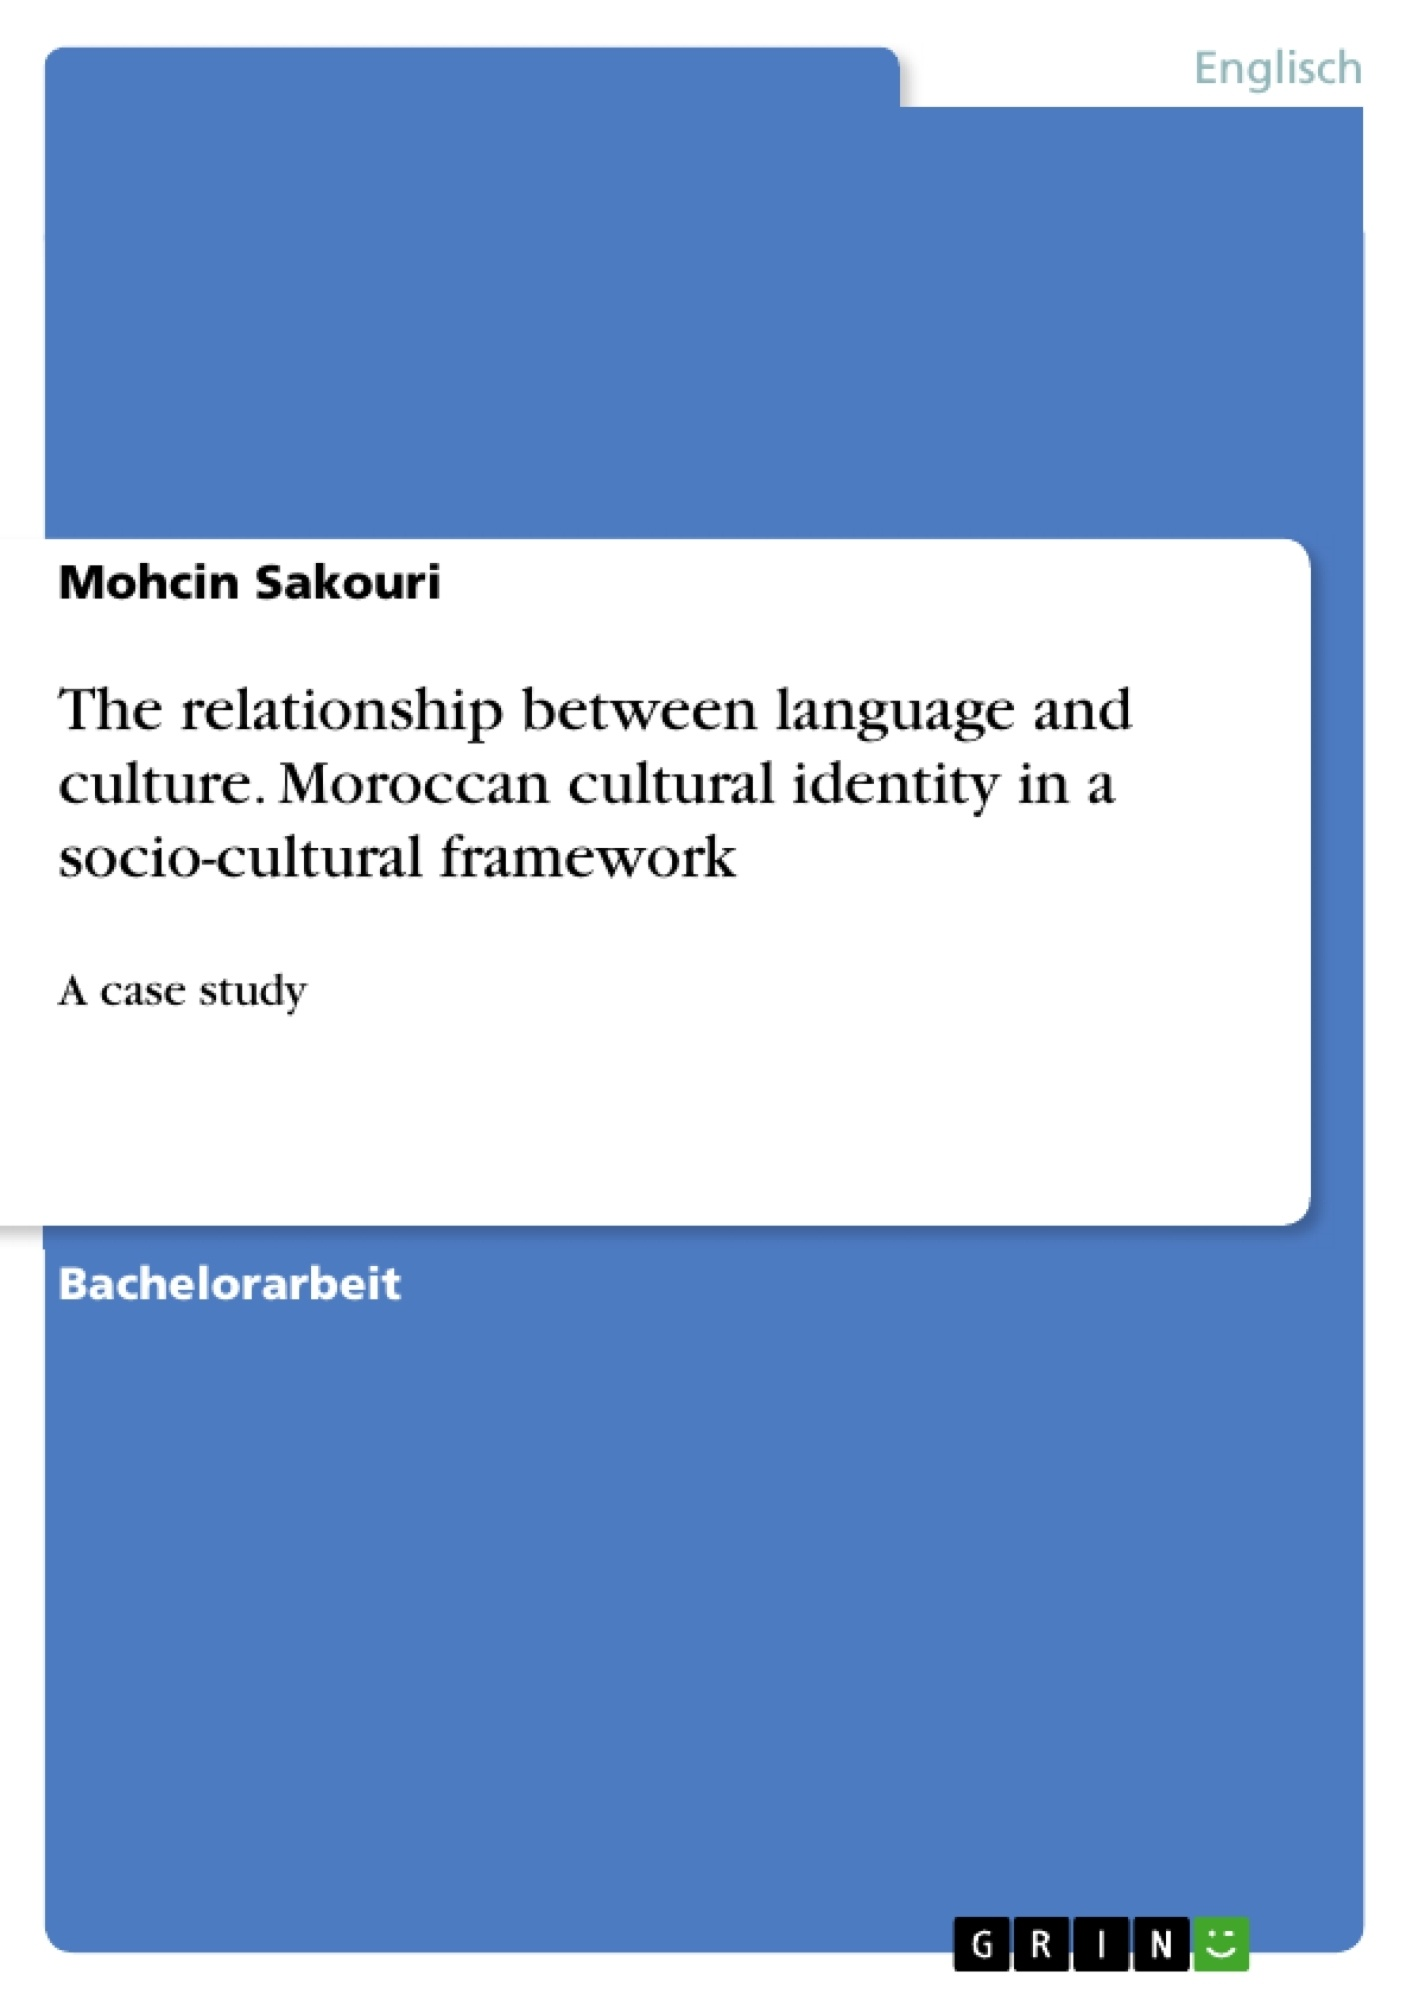 Titel: The relationship between language and culture. Moroccan cultural identity in a socio-cultural framework